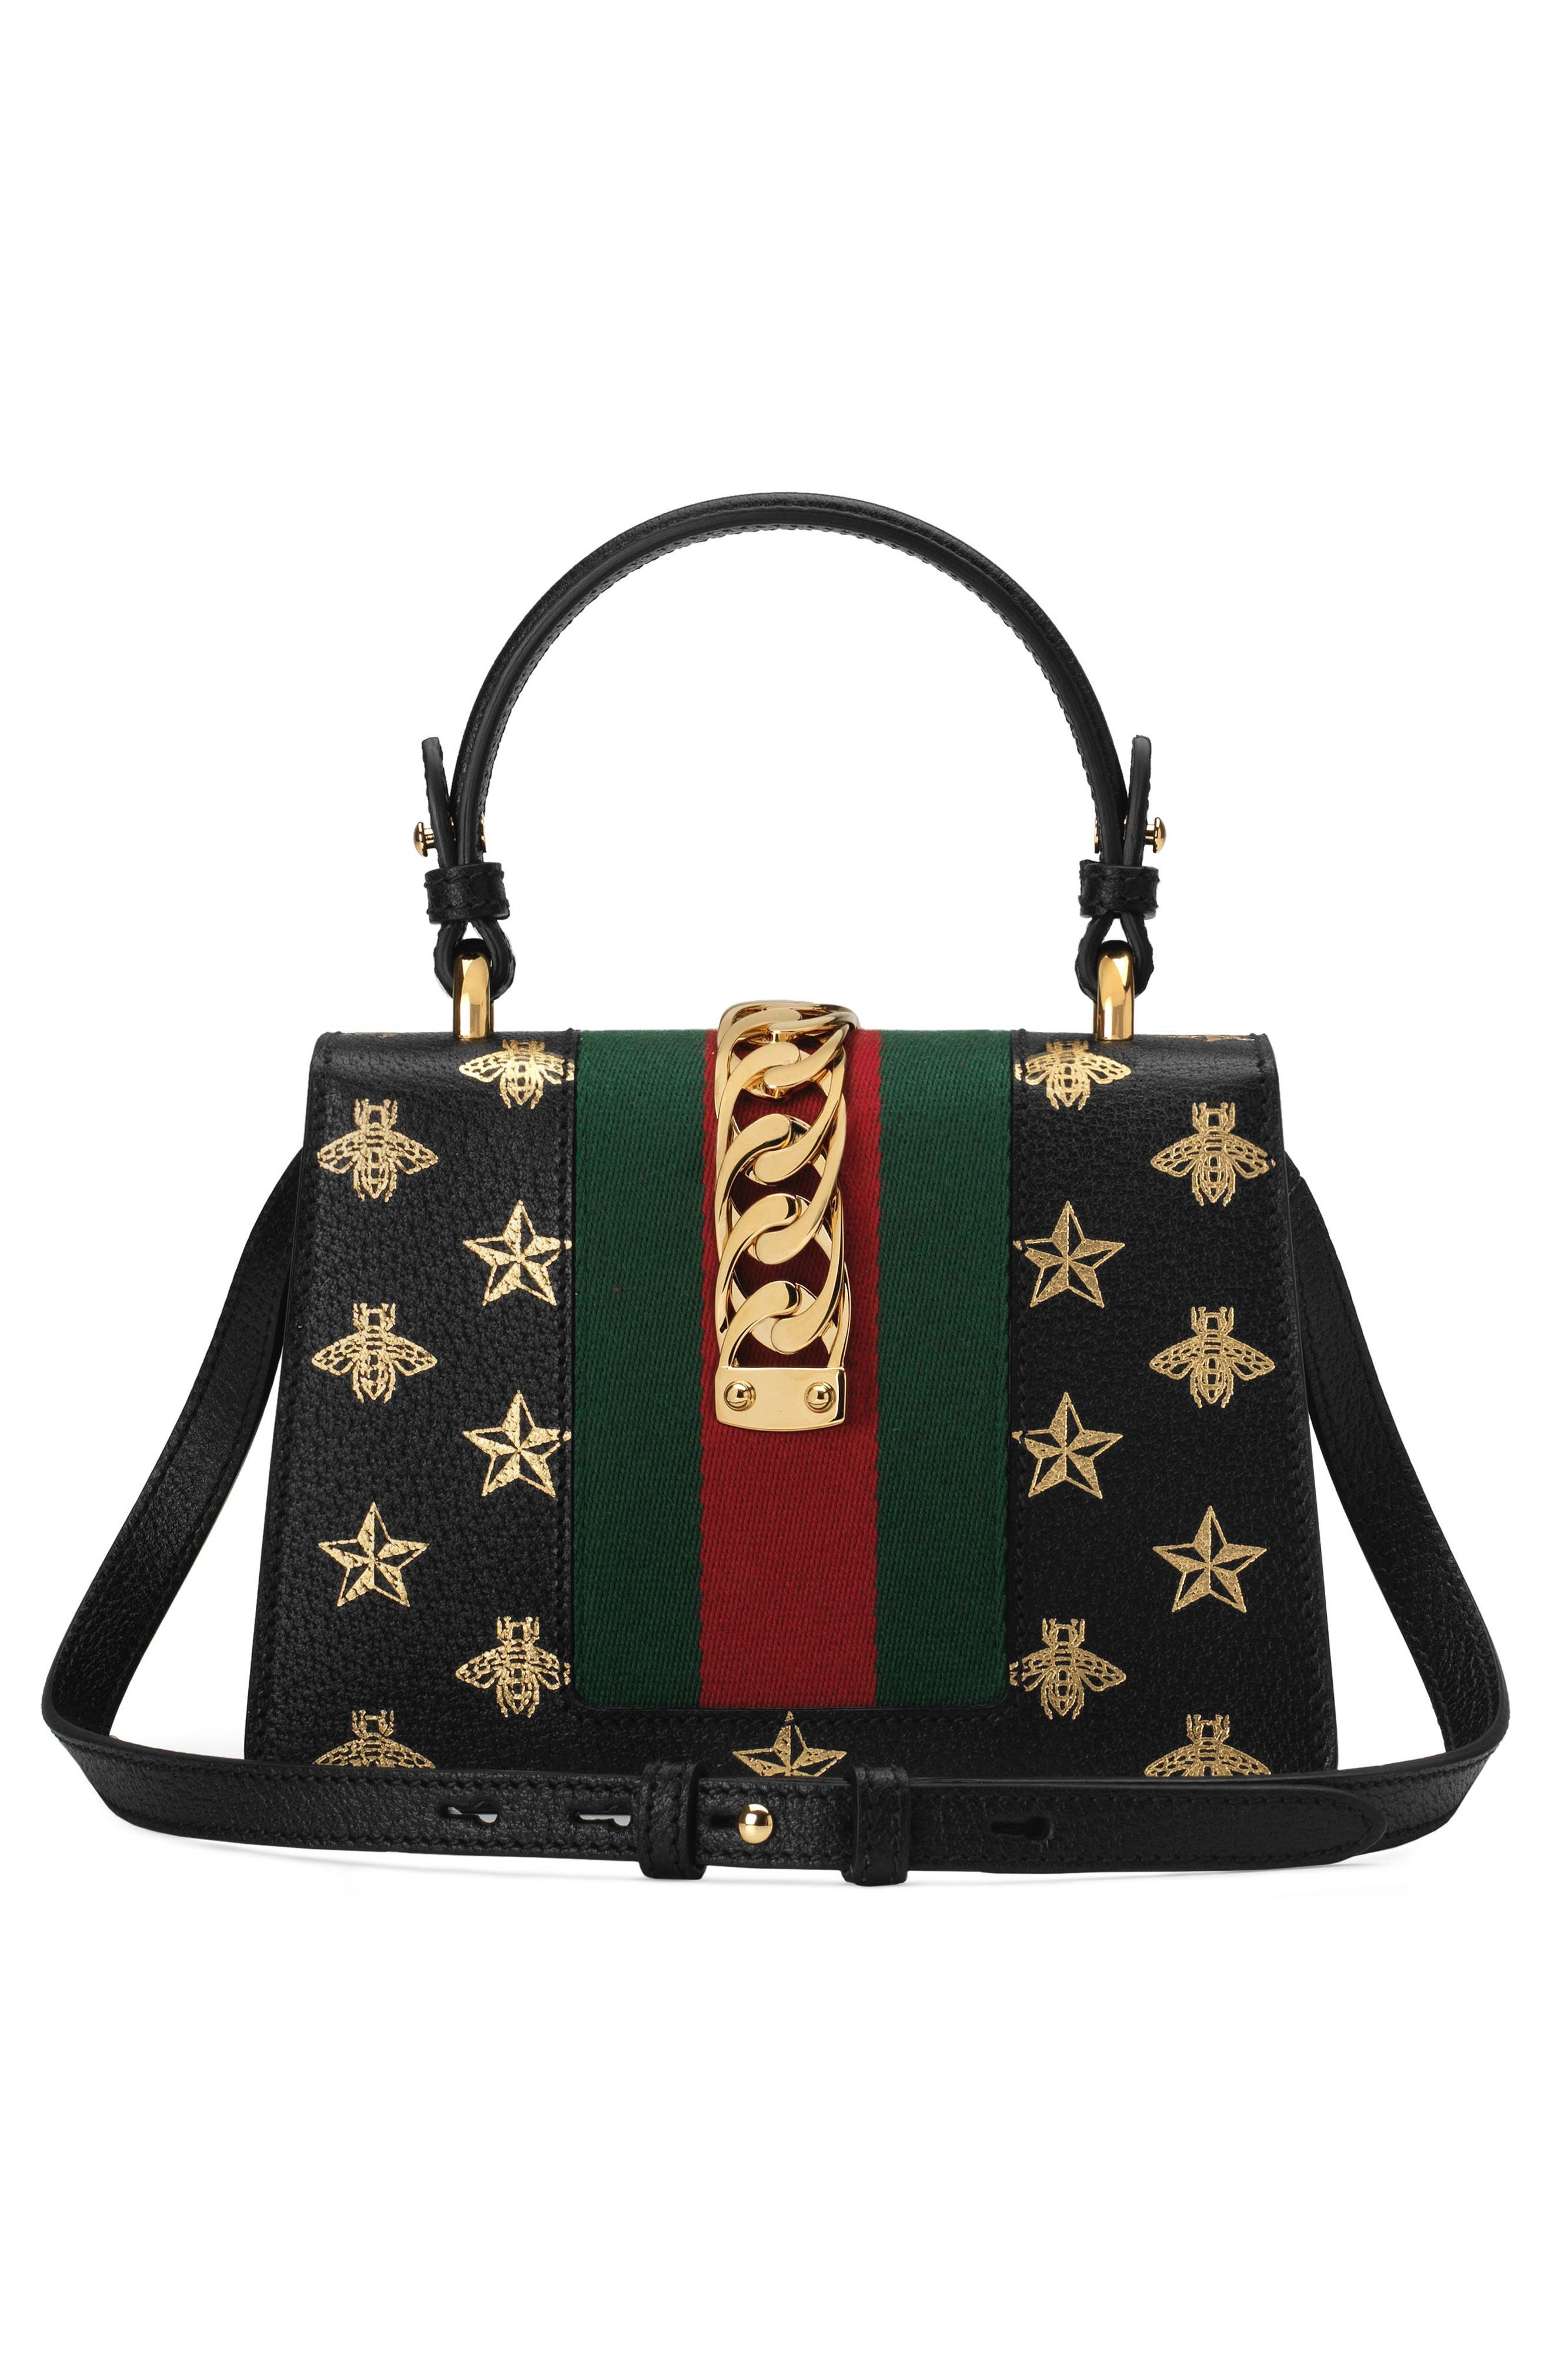 Small Sylvie Top Handle Leather Shoulder Bag,                             Alternate thumbnail 2, color,                             NERO/ ORO/ VERT/ RED